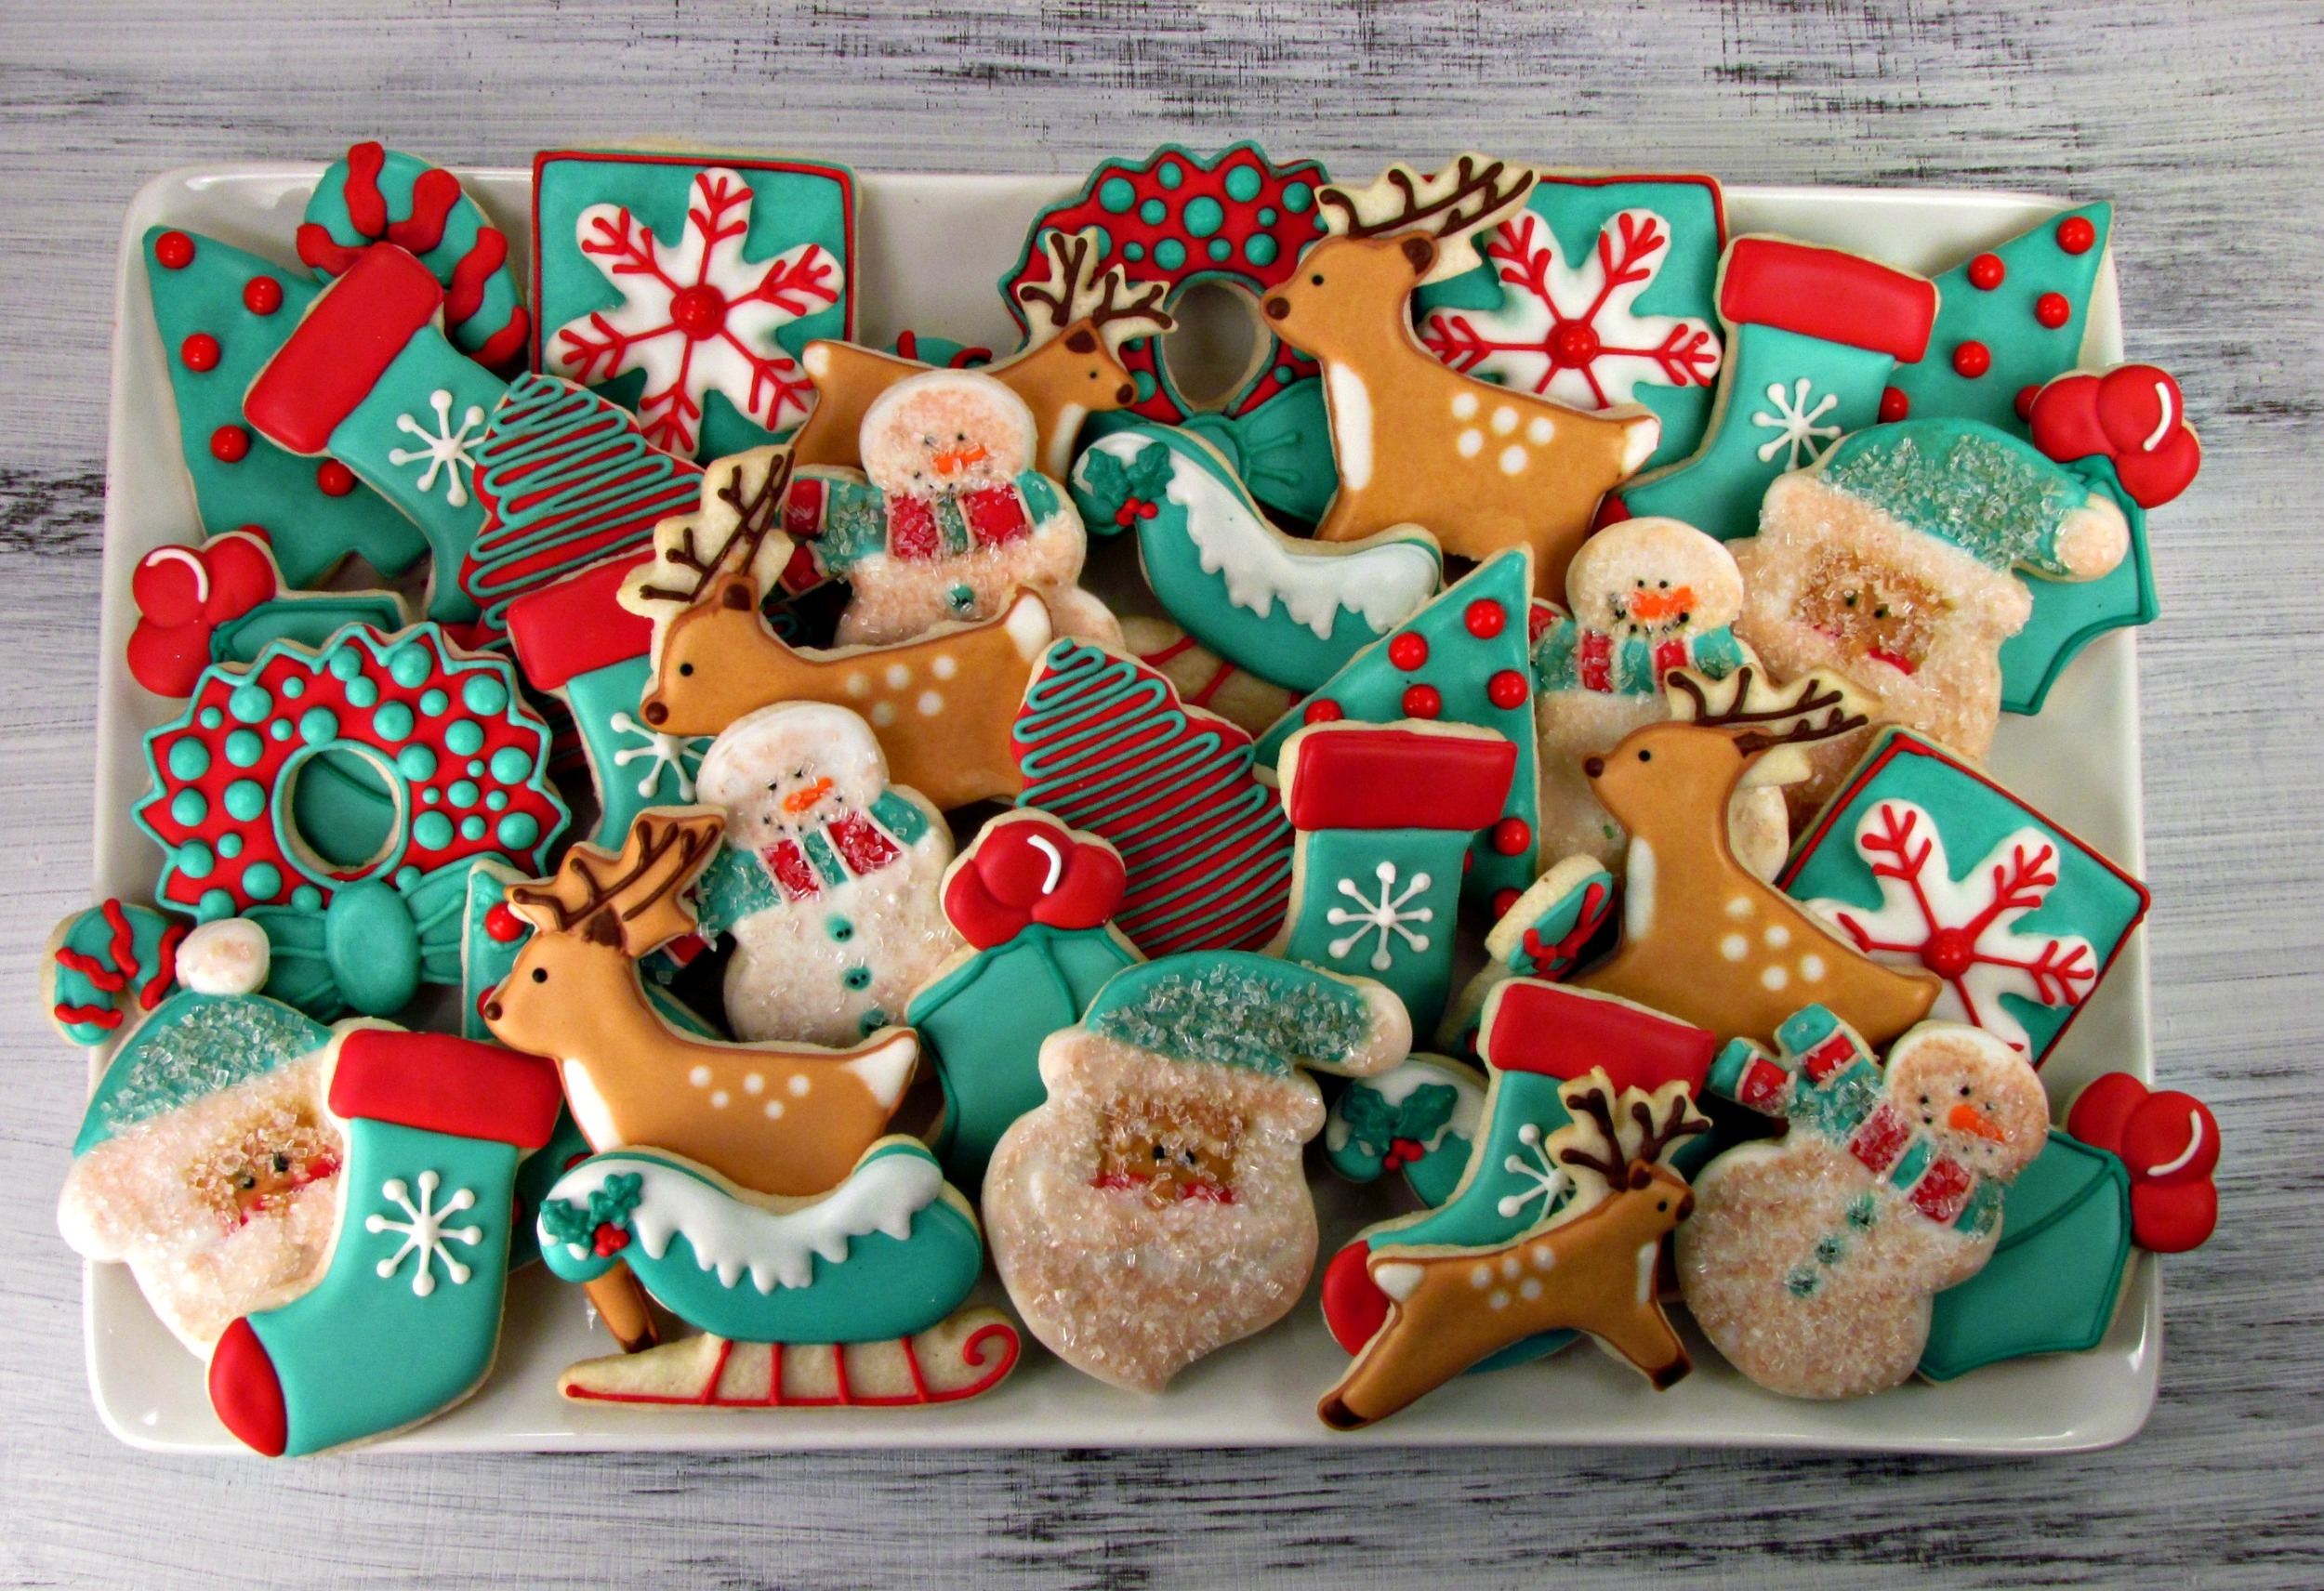 Source:  http://bchristmas.hol.es/christmas-cookies/